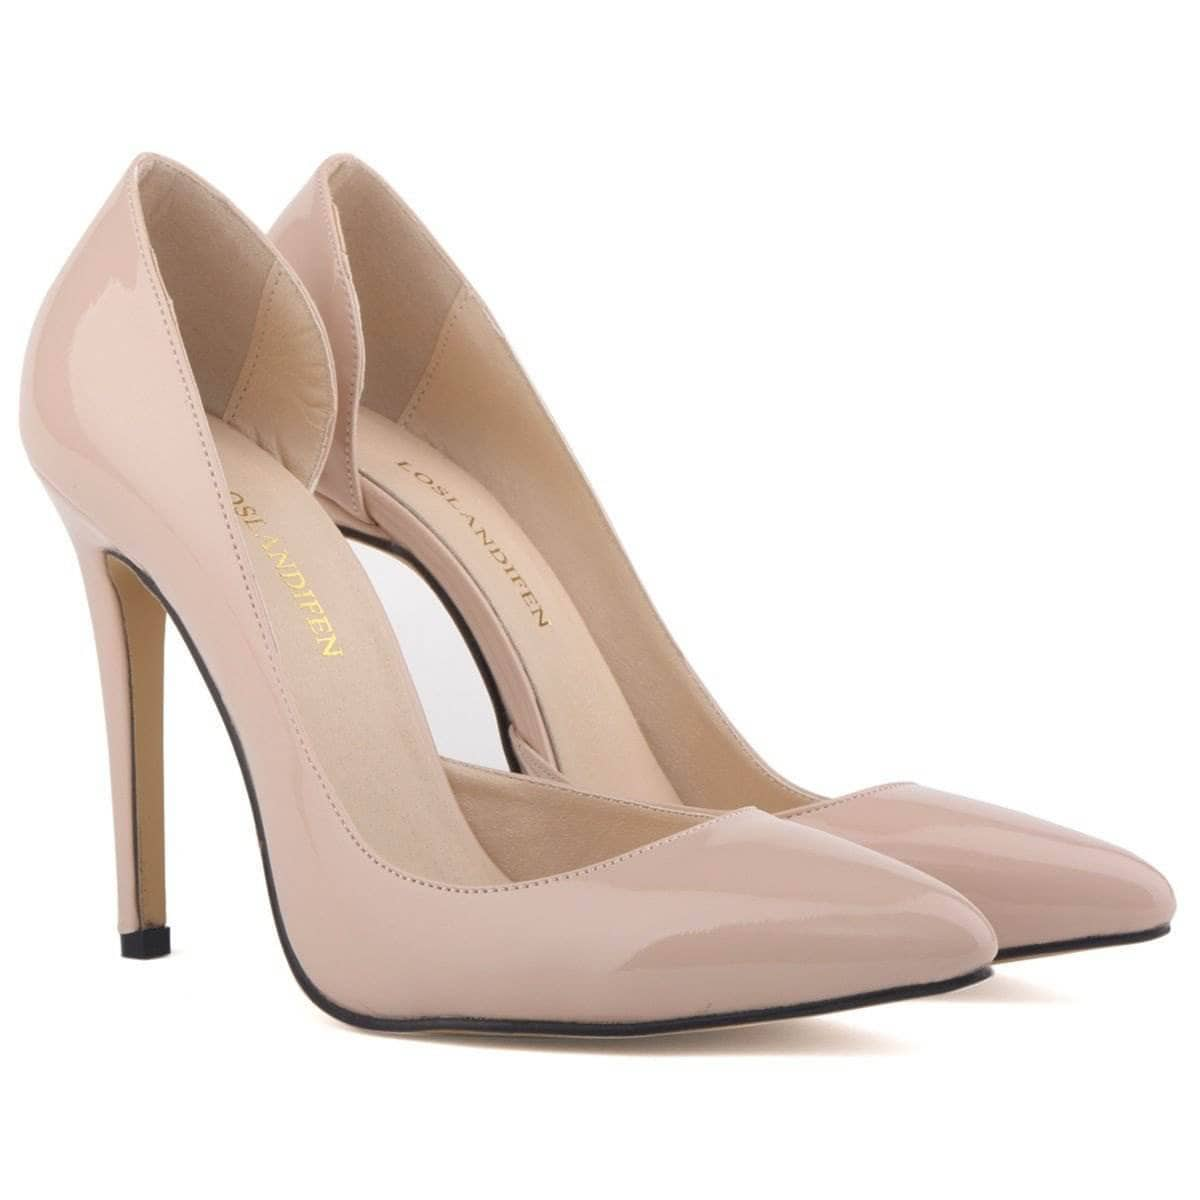 Jimmy Hoo Accessories Beige Classic Pumps - Two Colors